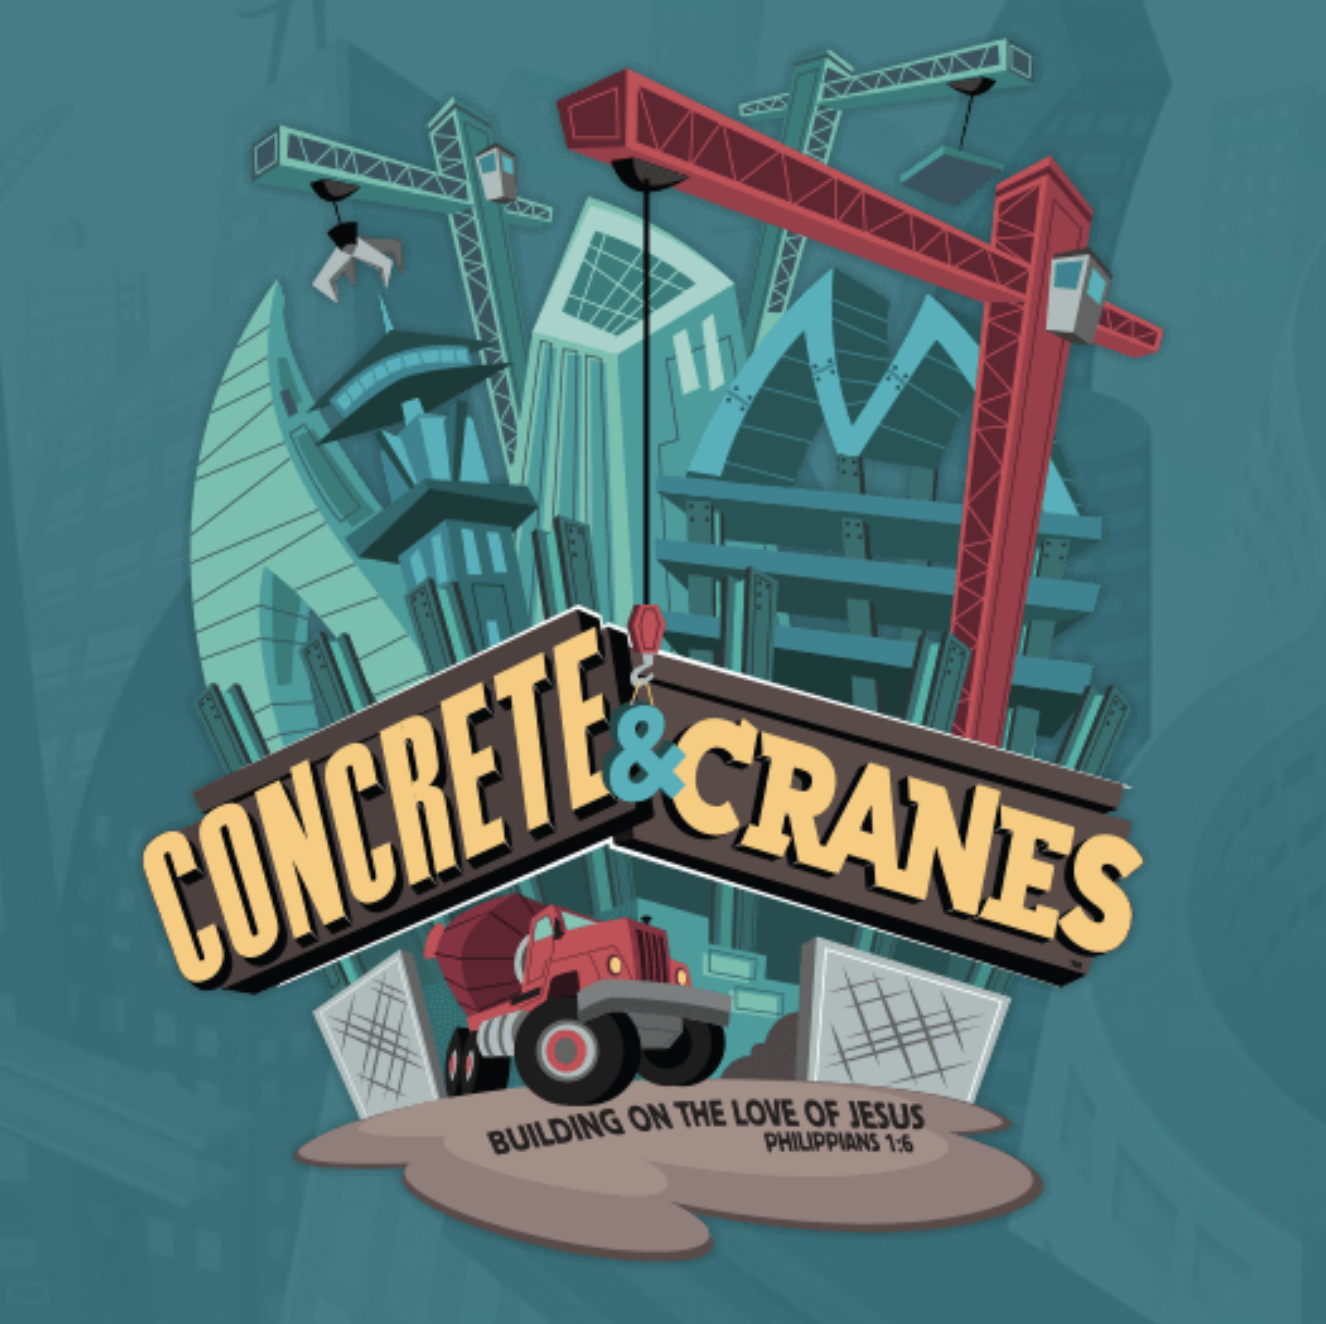 Concrete & Cranes VBS - Get The Scoop On Every 2020 VBS Theme ...